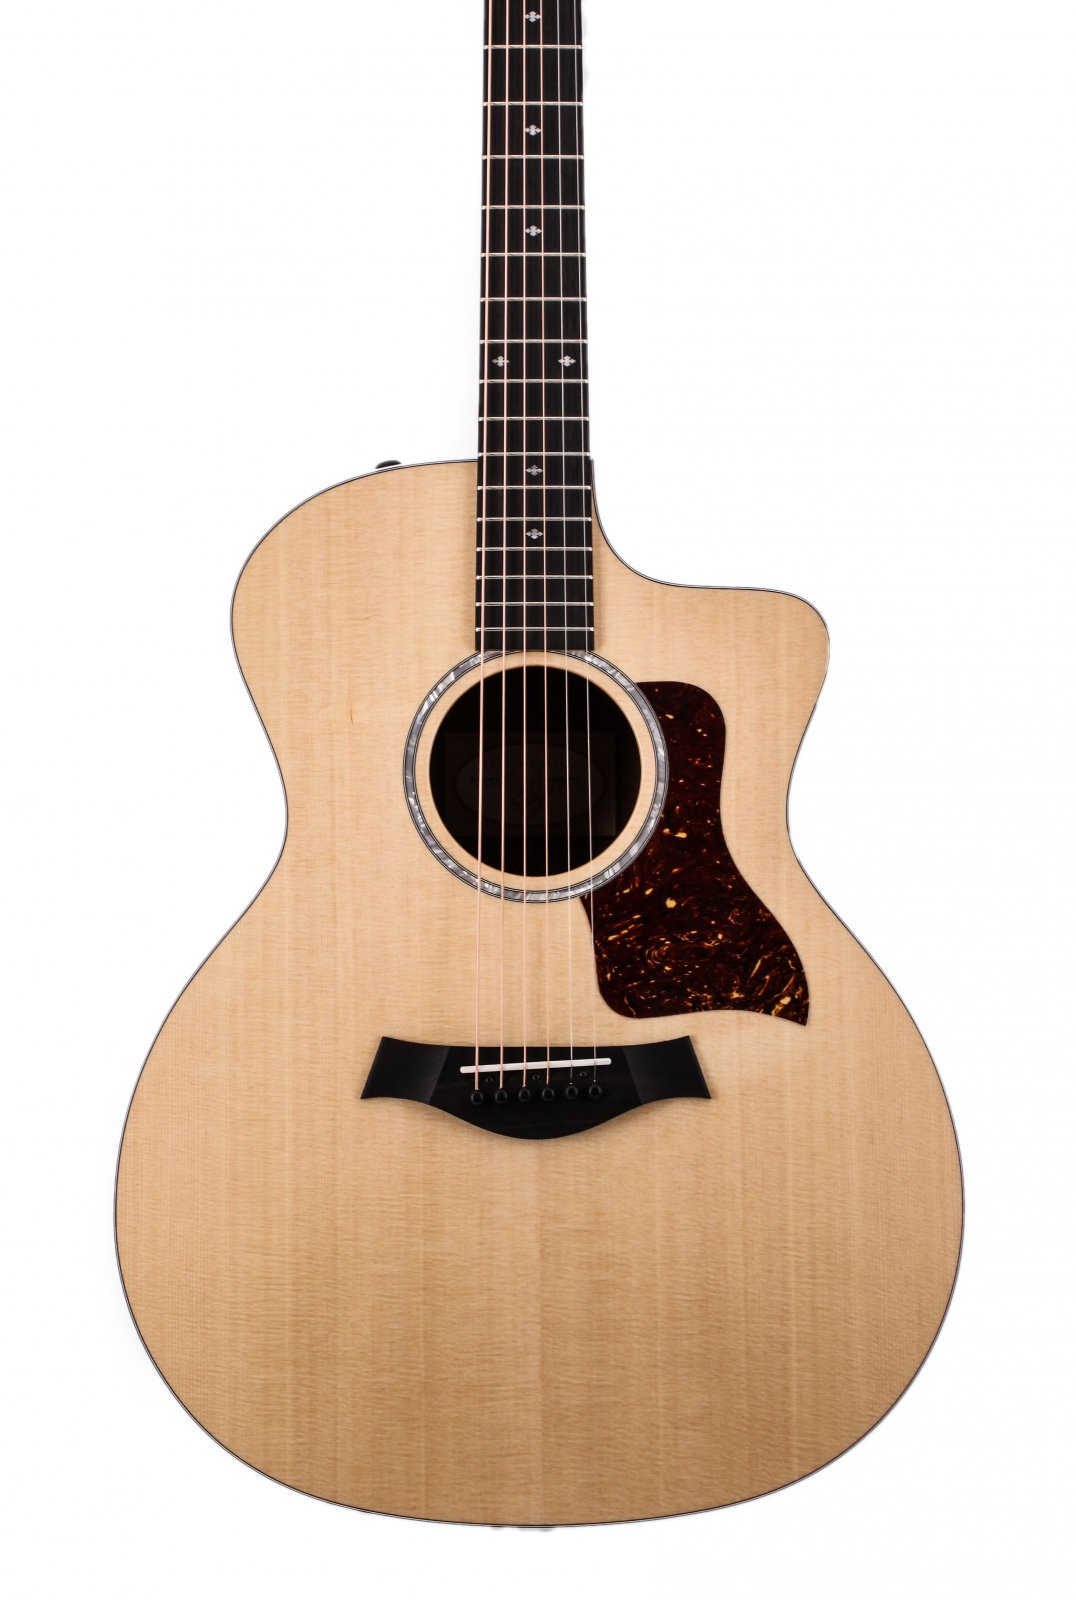 Taylor 214ce-LTD Black Limba and Spruce Top